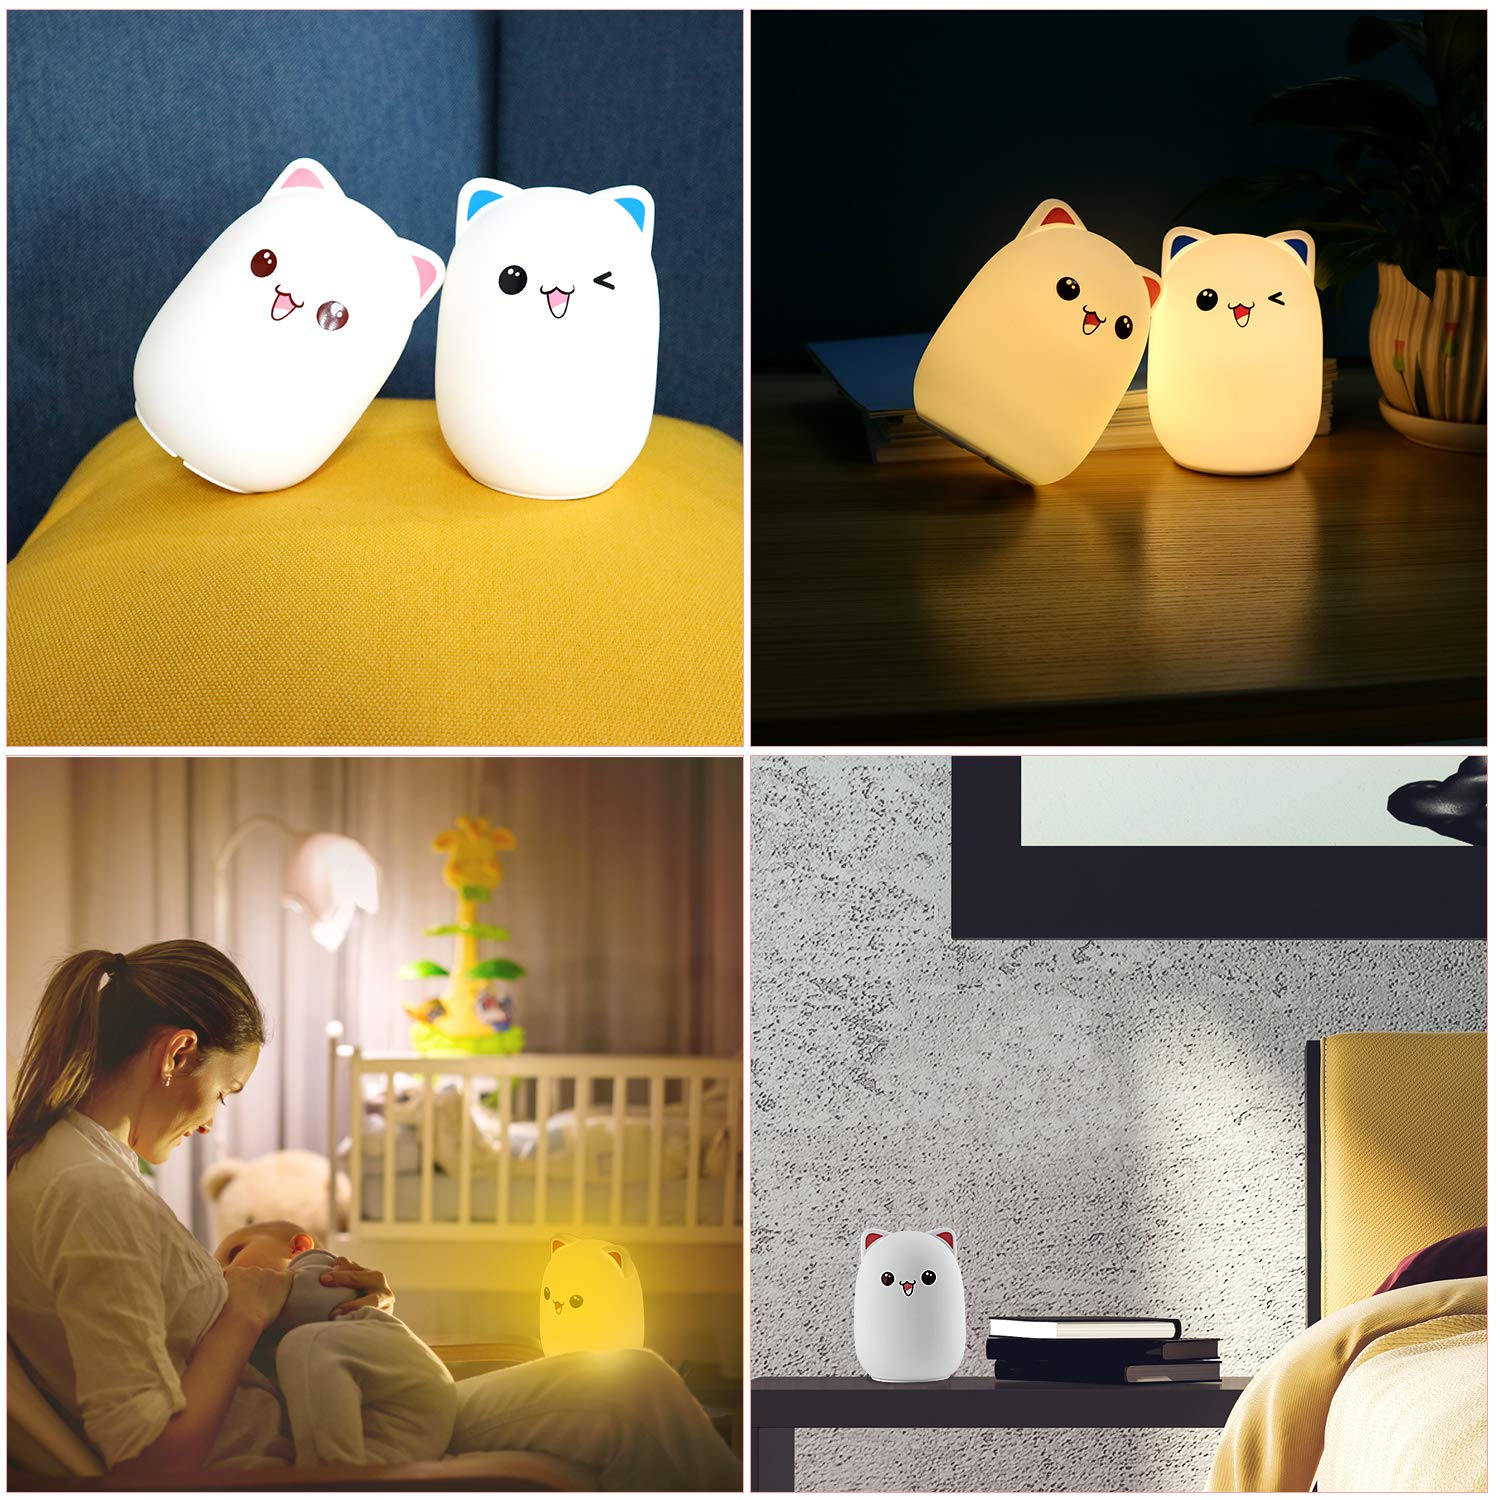 Amazon.com: Cute Cat LED Nursery Night Light for Kids ...